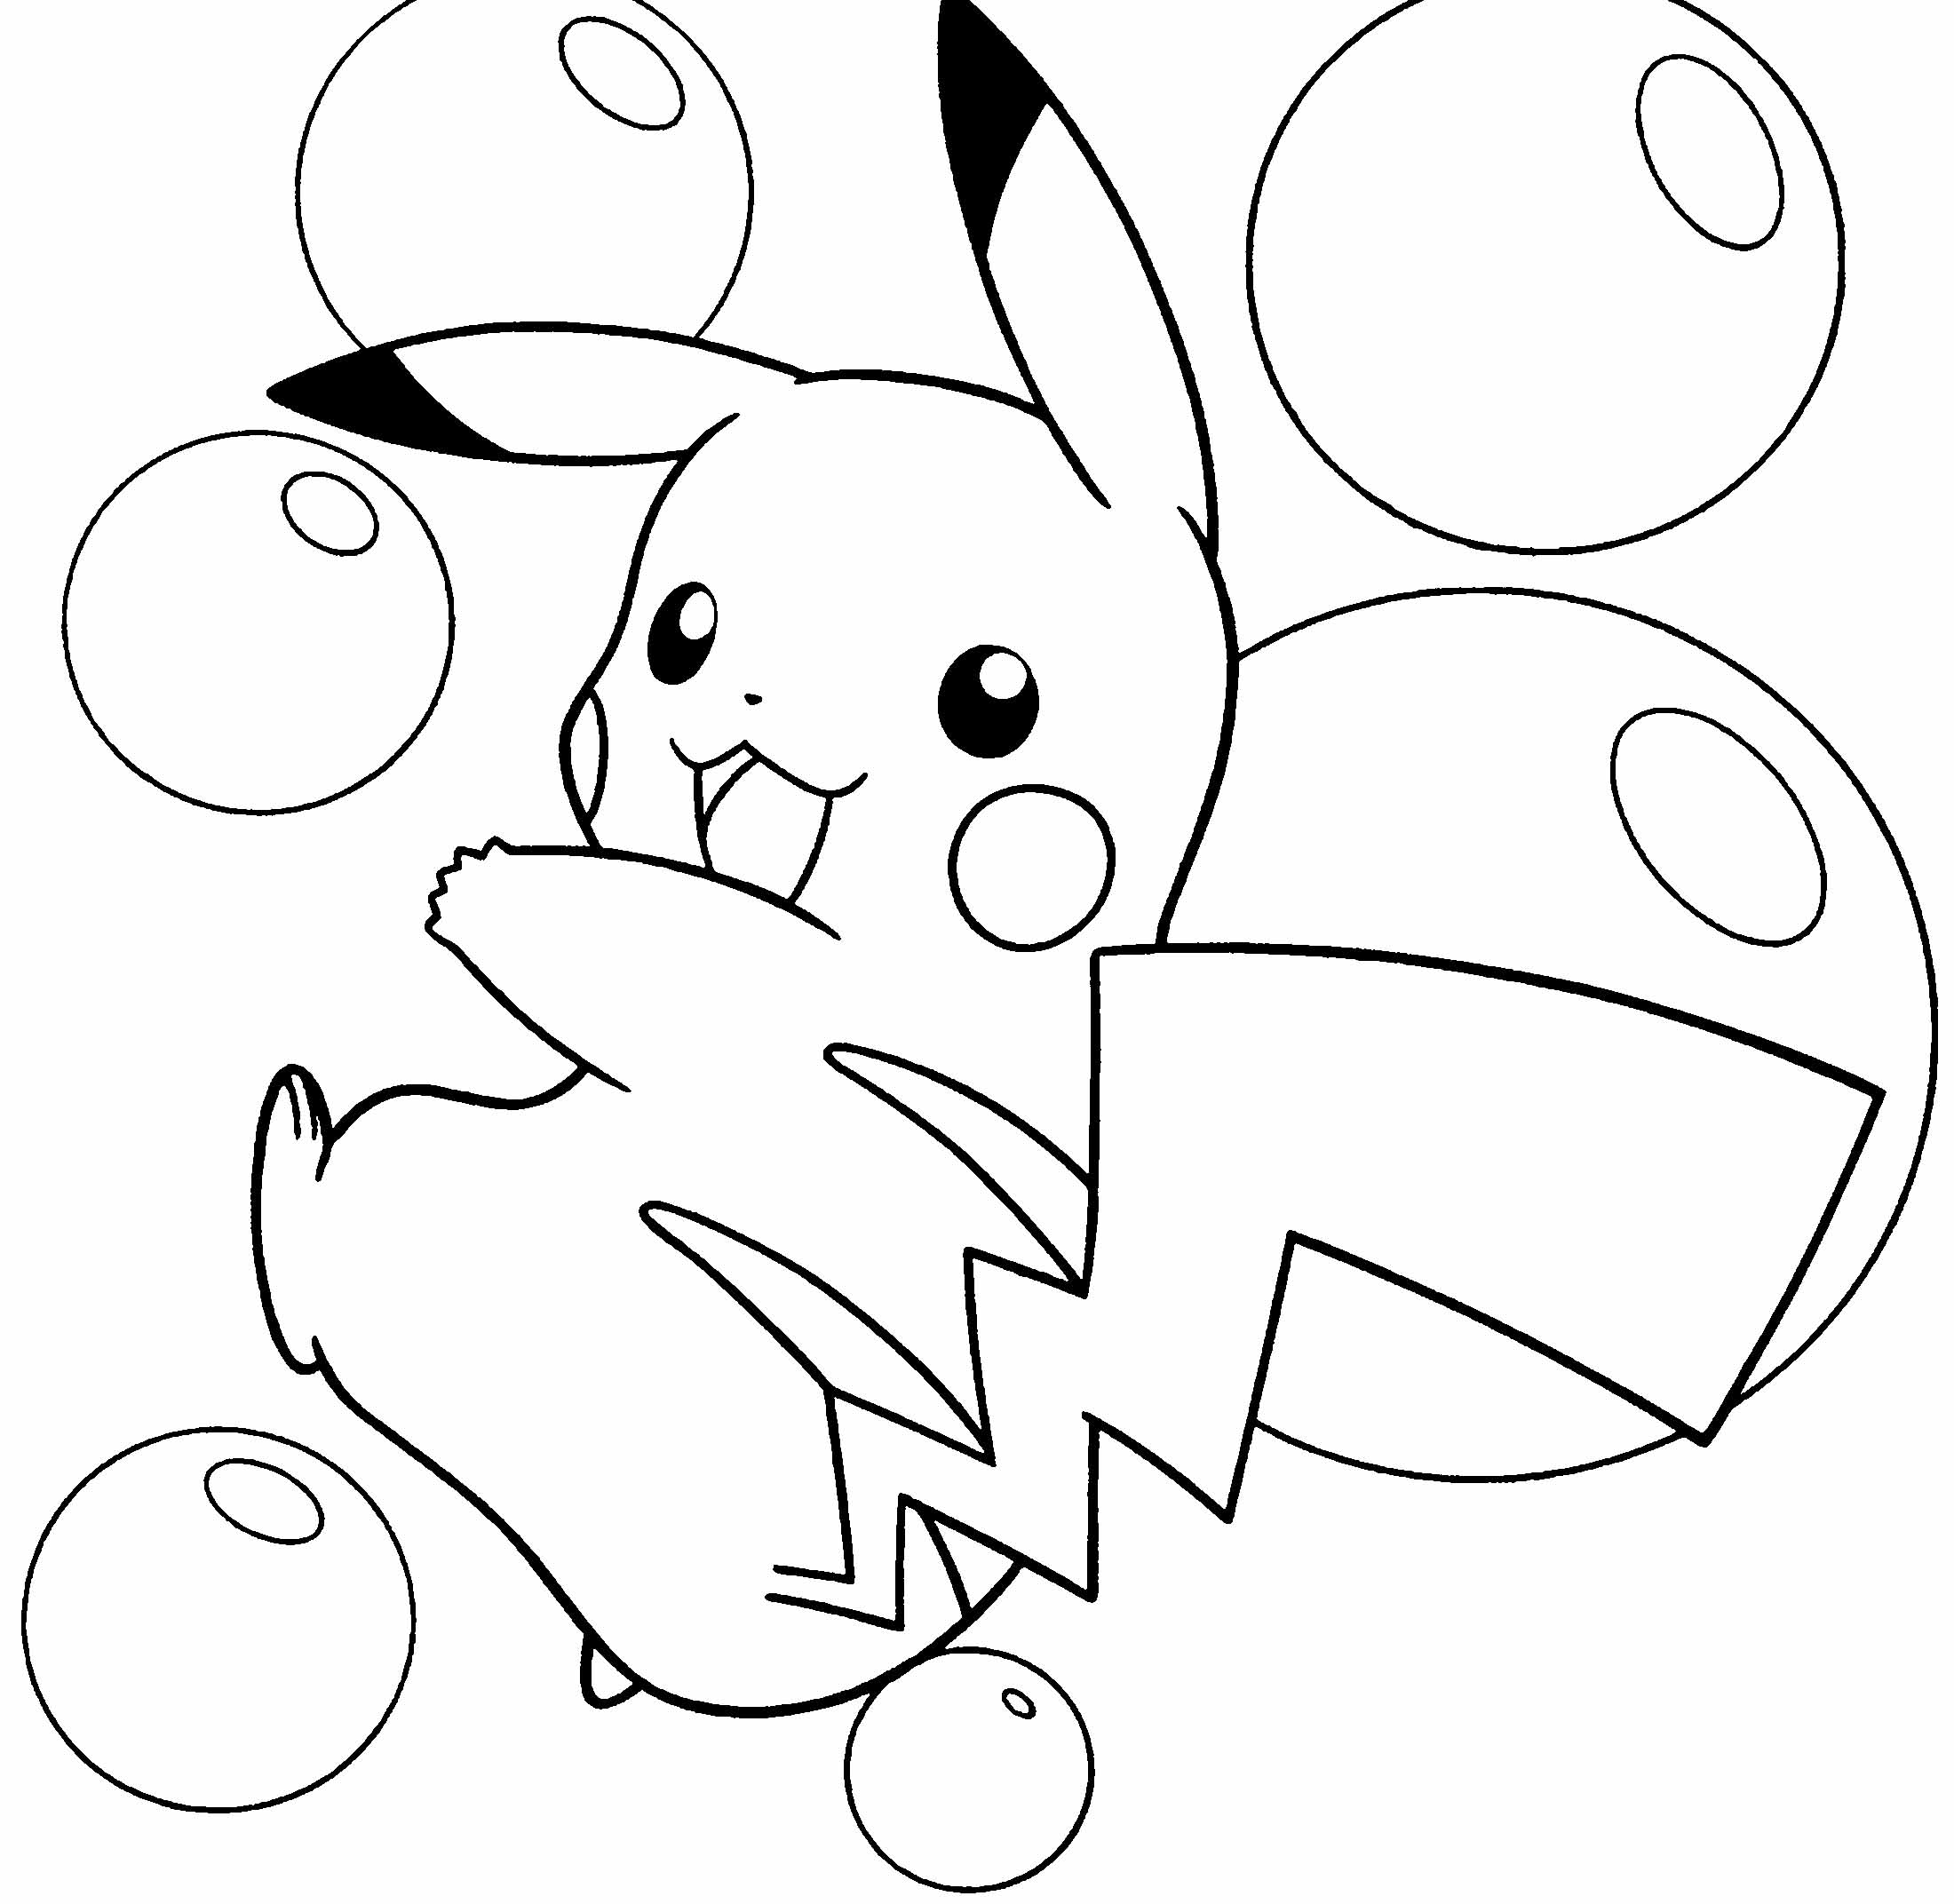 2200x2144 Coloring Pages For Girls And Up Cute Pokemon Eevee Pikachu Tiny